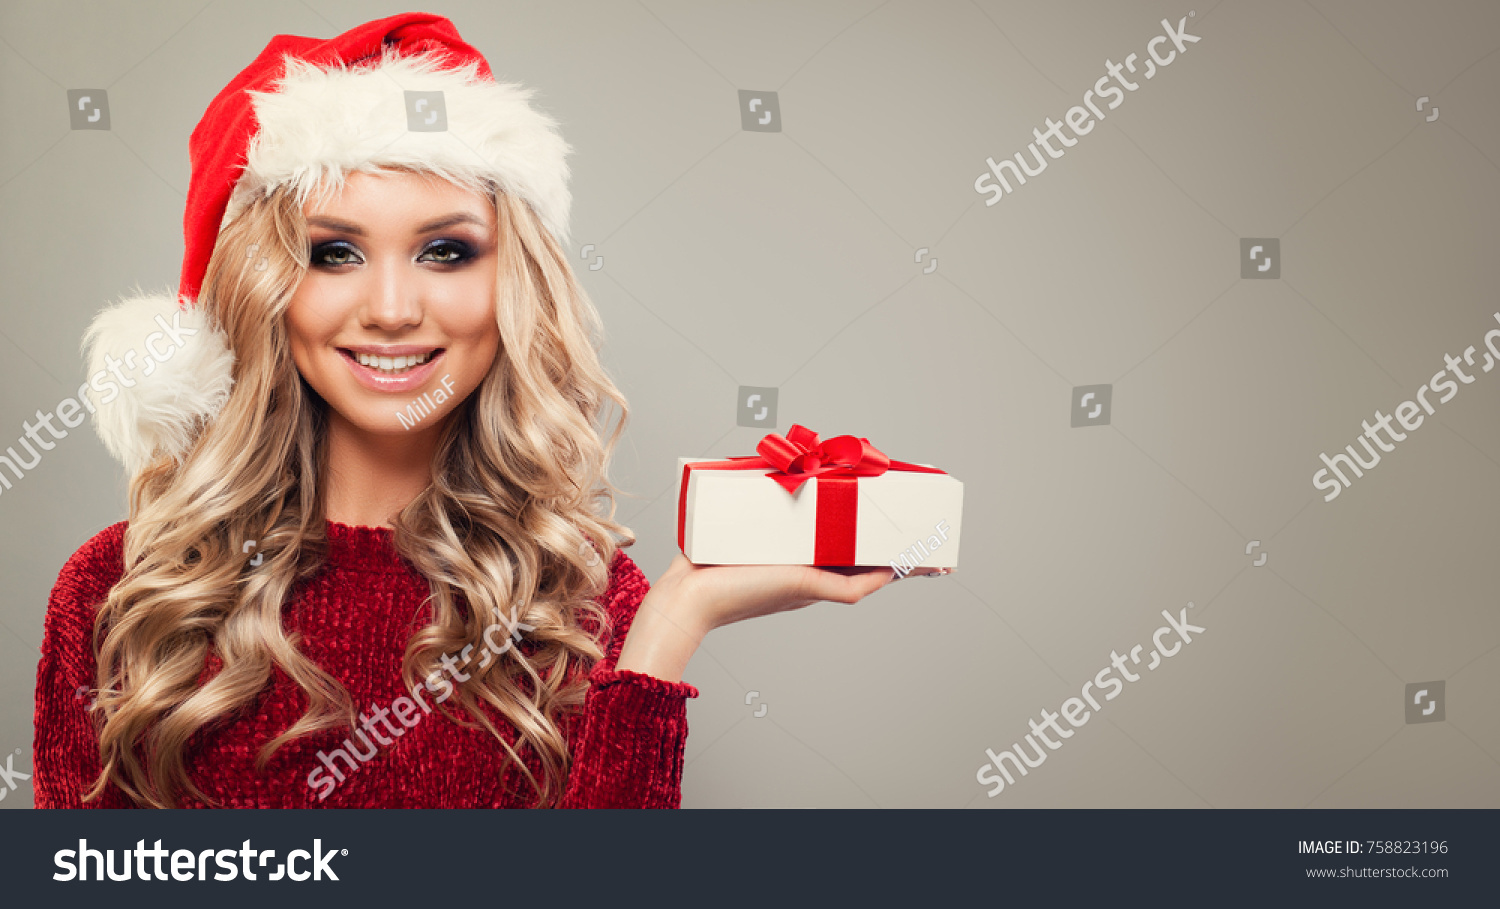 aaf3f4aa7a5e7 Christmas Woman in Santa Hat holding Gift. Happy Model with Brown Hair and Christmas  Gift